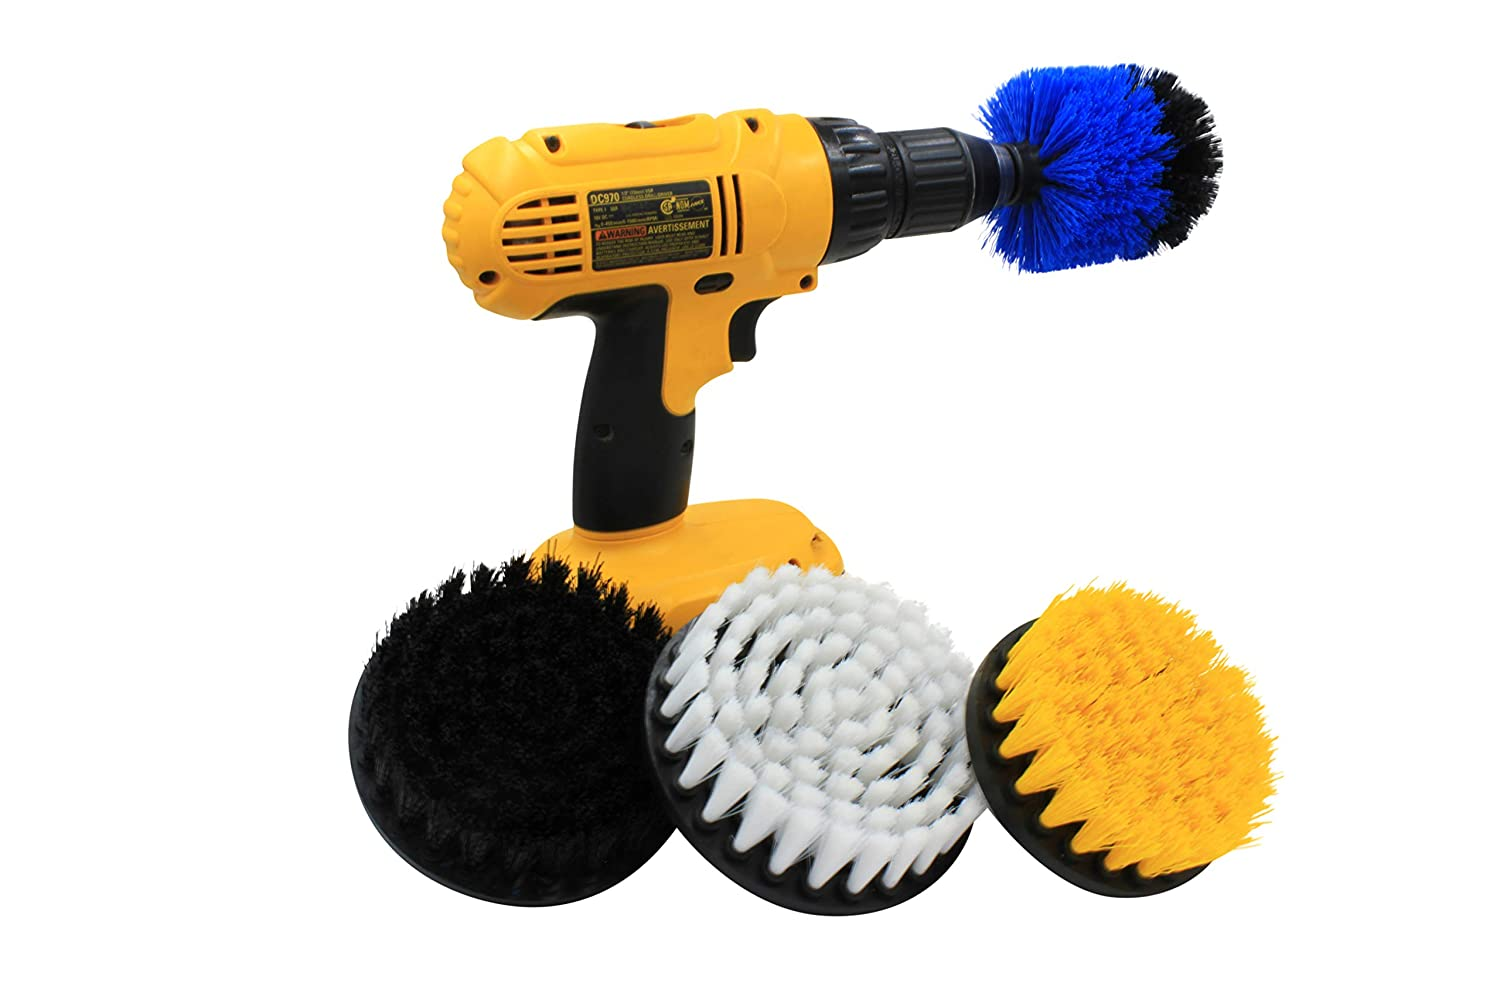 4 Piece Drill Brush Set to aid in Cleaning bathrooms, Kitchens, Grills, Grout, Tile, Carpet, Furniture, Floors and Much, Much More. *Drill not Included*